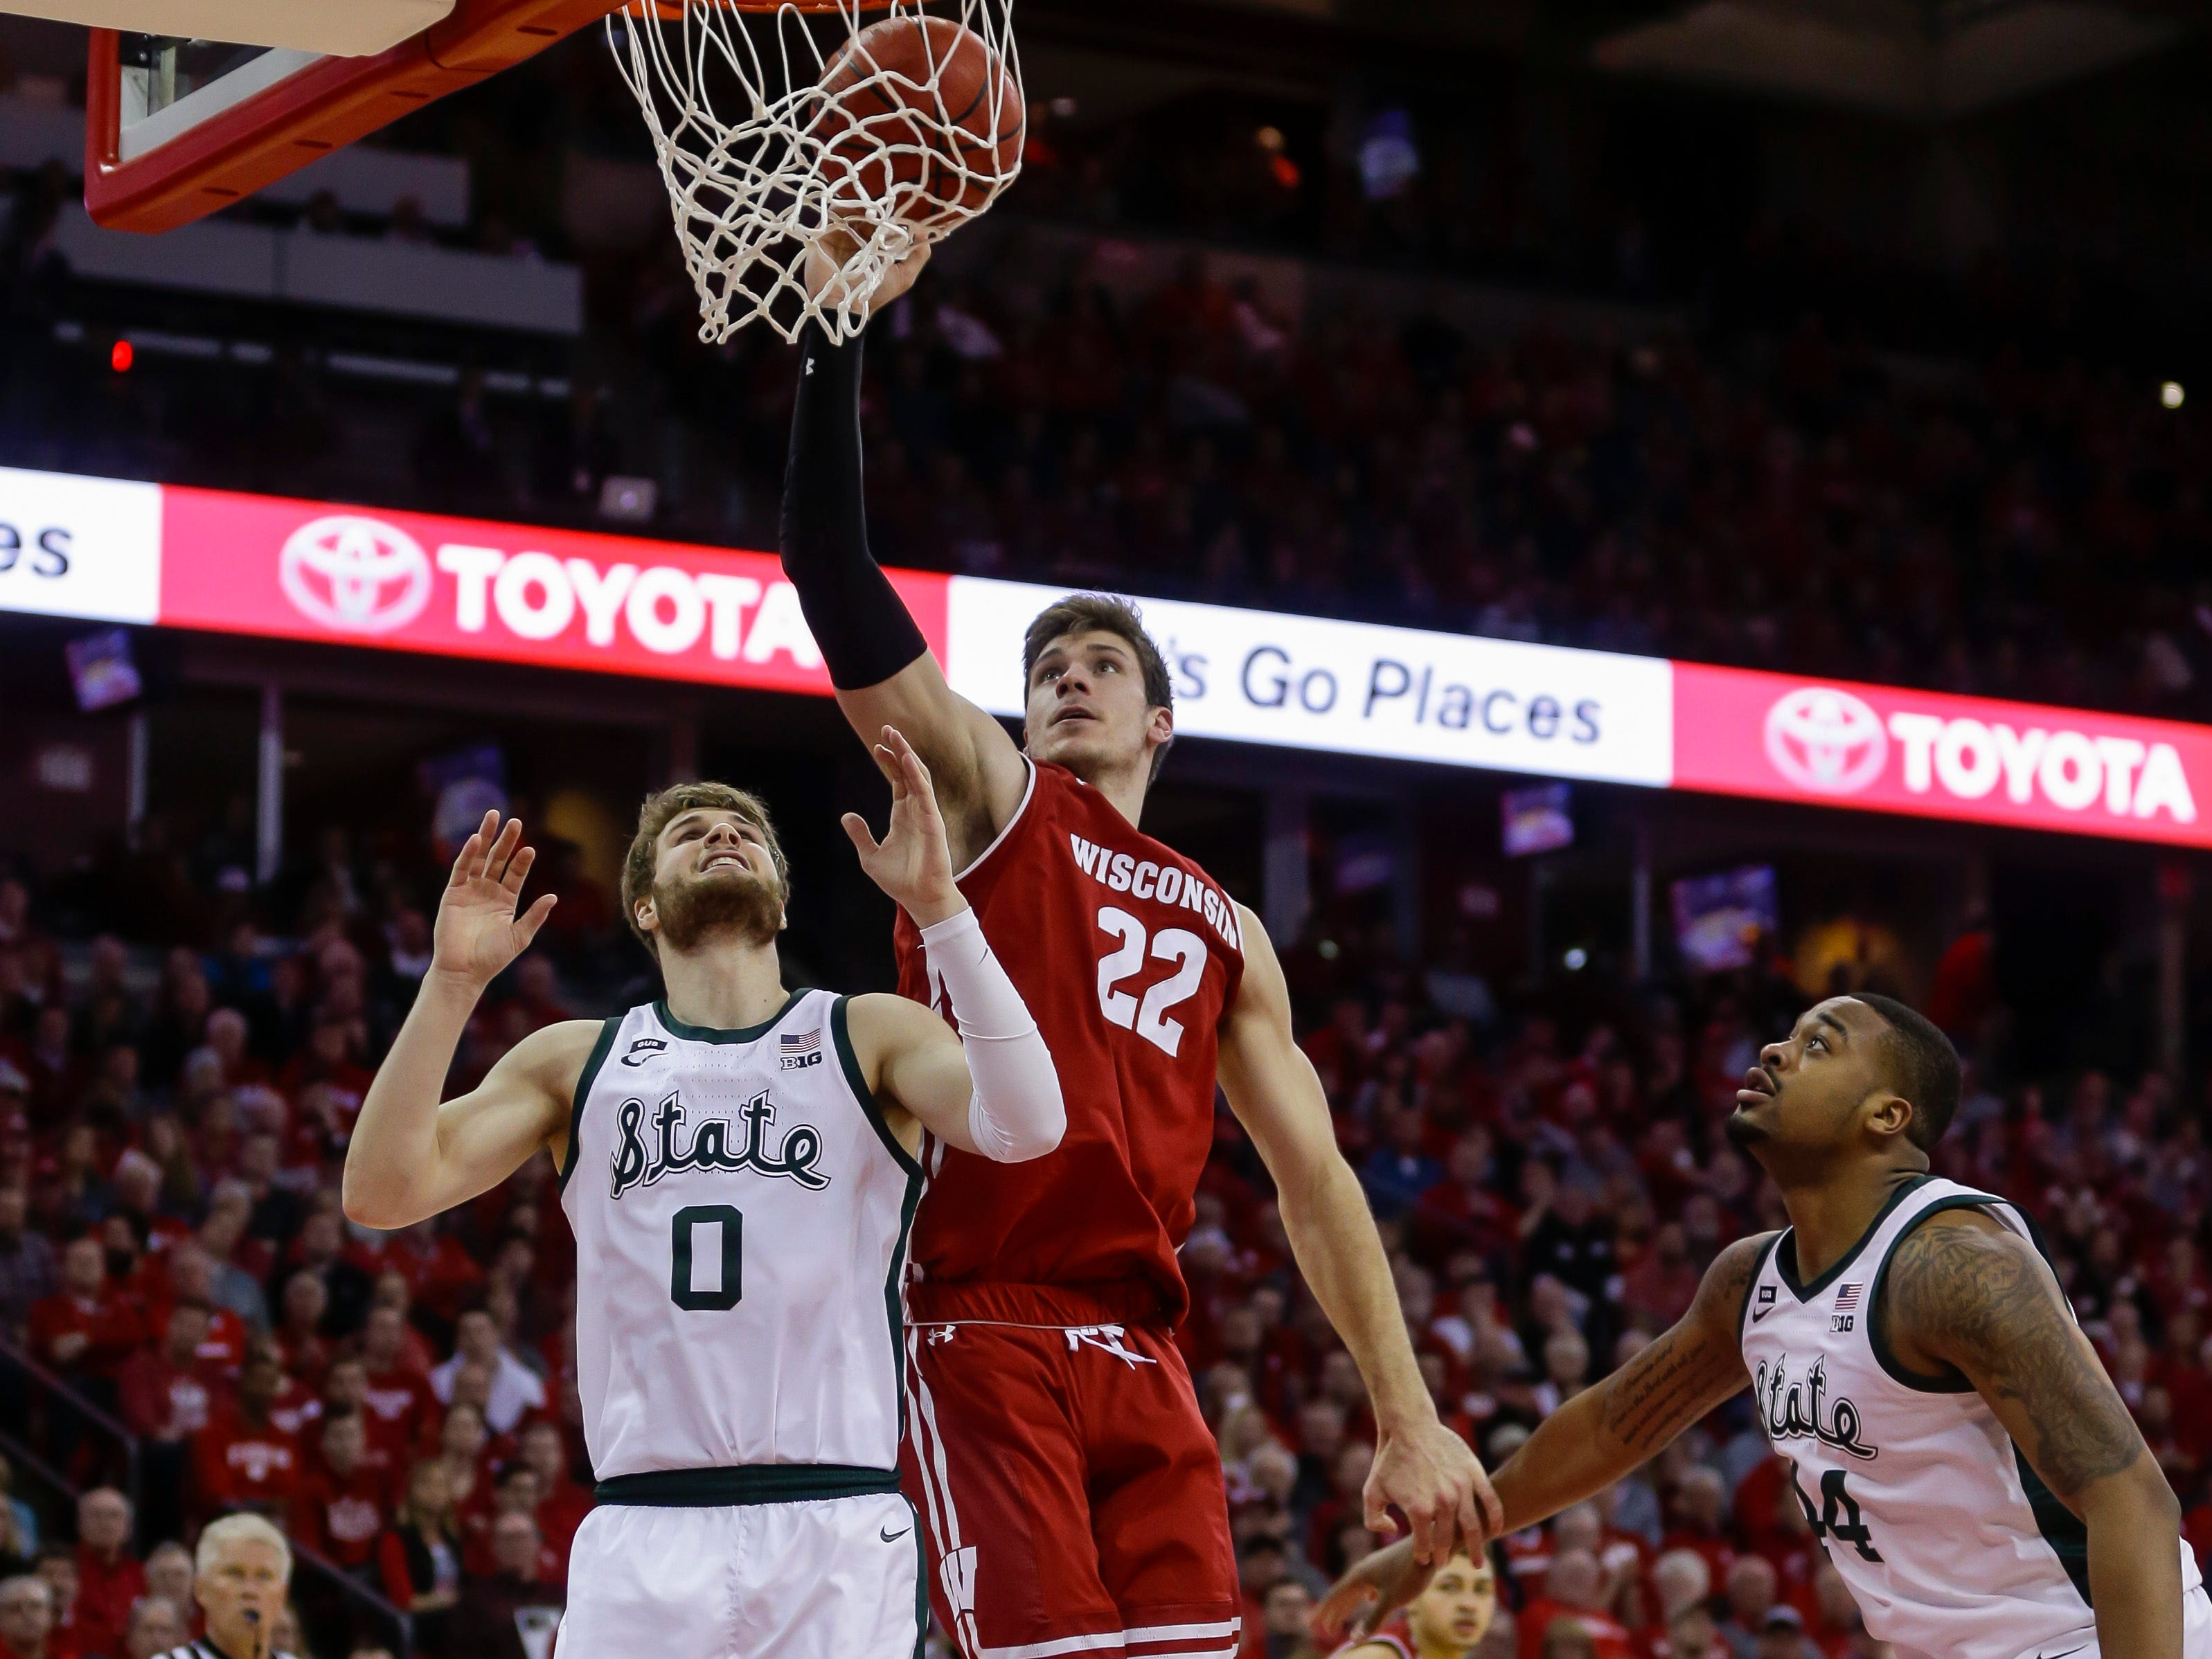 Wisconsin's Ethan Happ (22) shoots against Michigan States's Kyle Ahrens (0) and Nick Ward, right, during the second half.